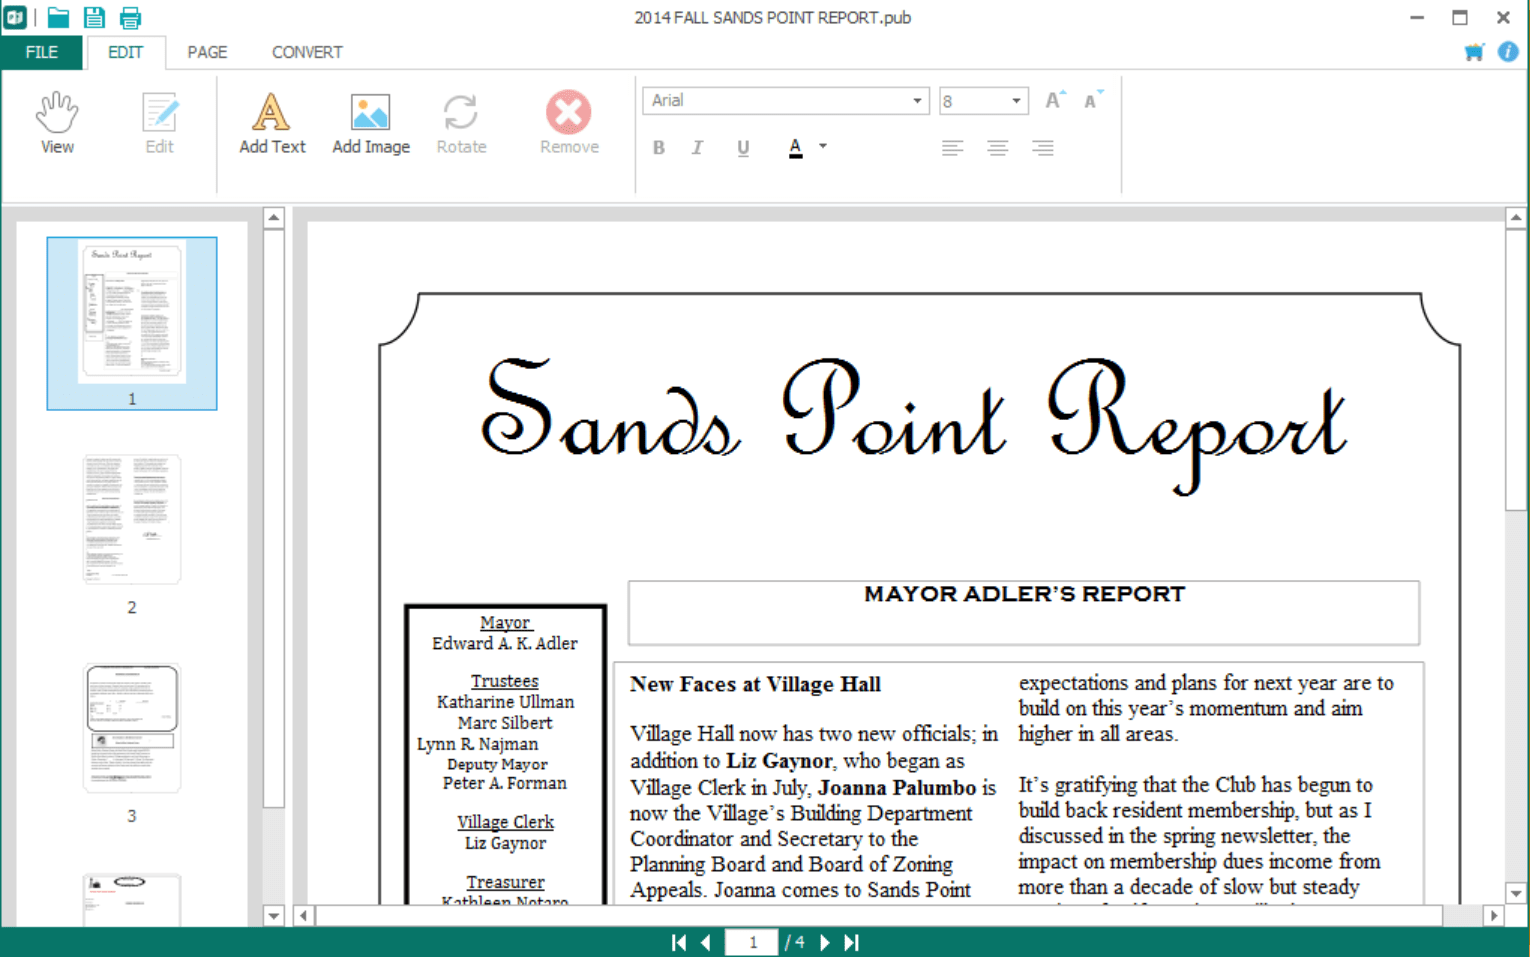 pdf viewer download for windows 10